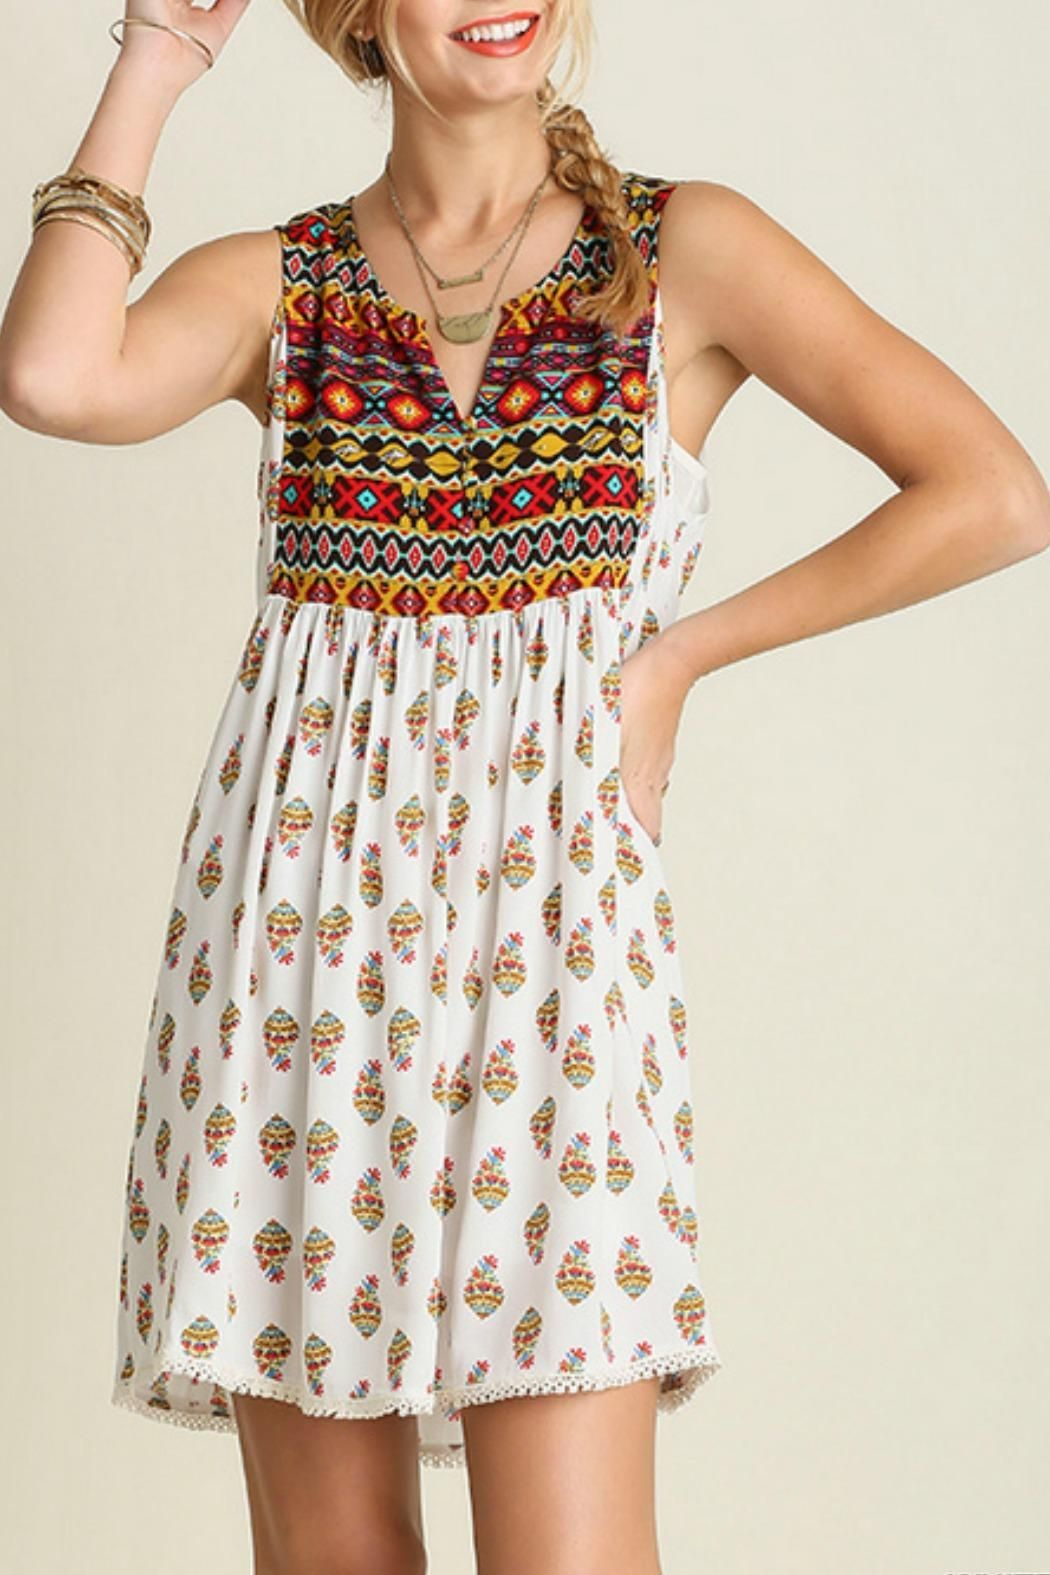 Popular in prints dress neckline dress casual and bodies